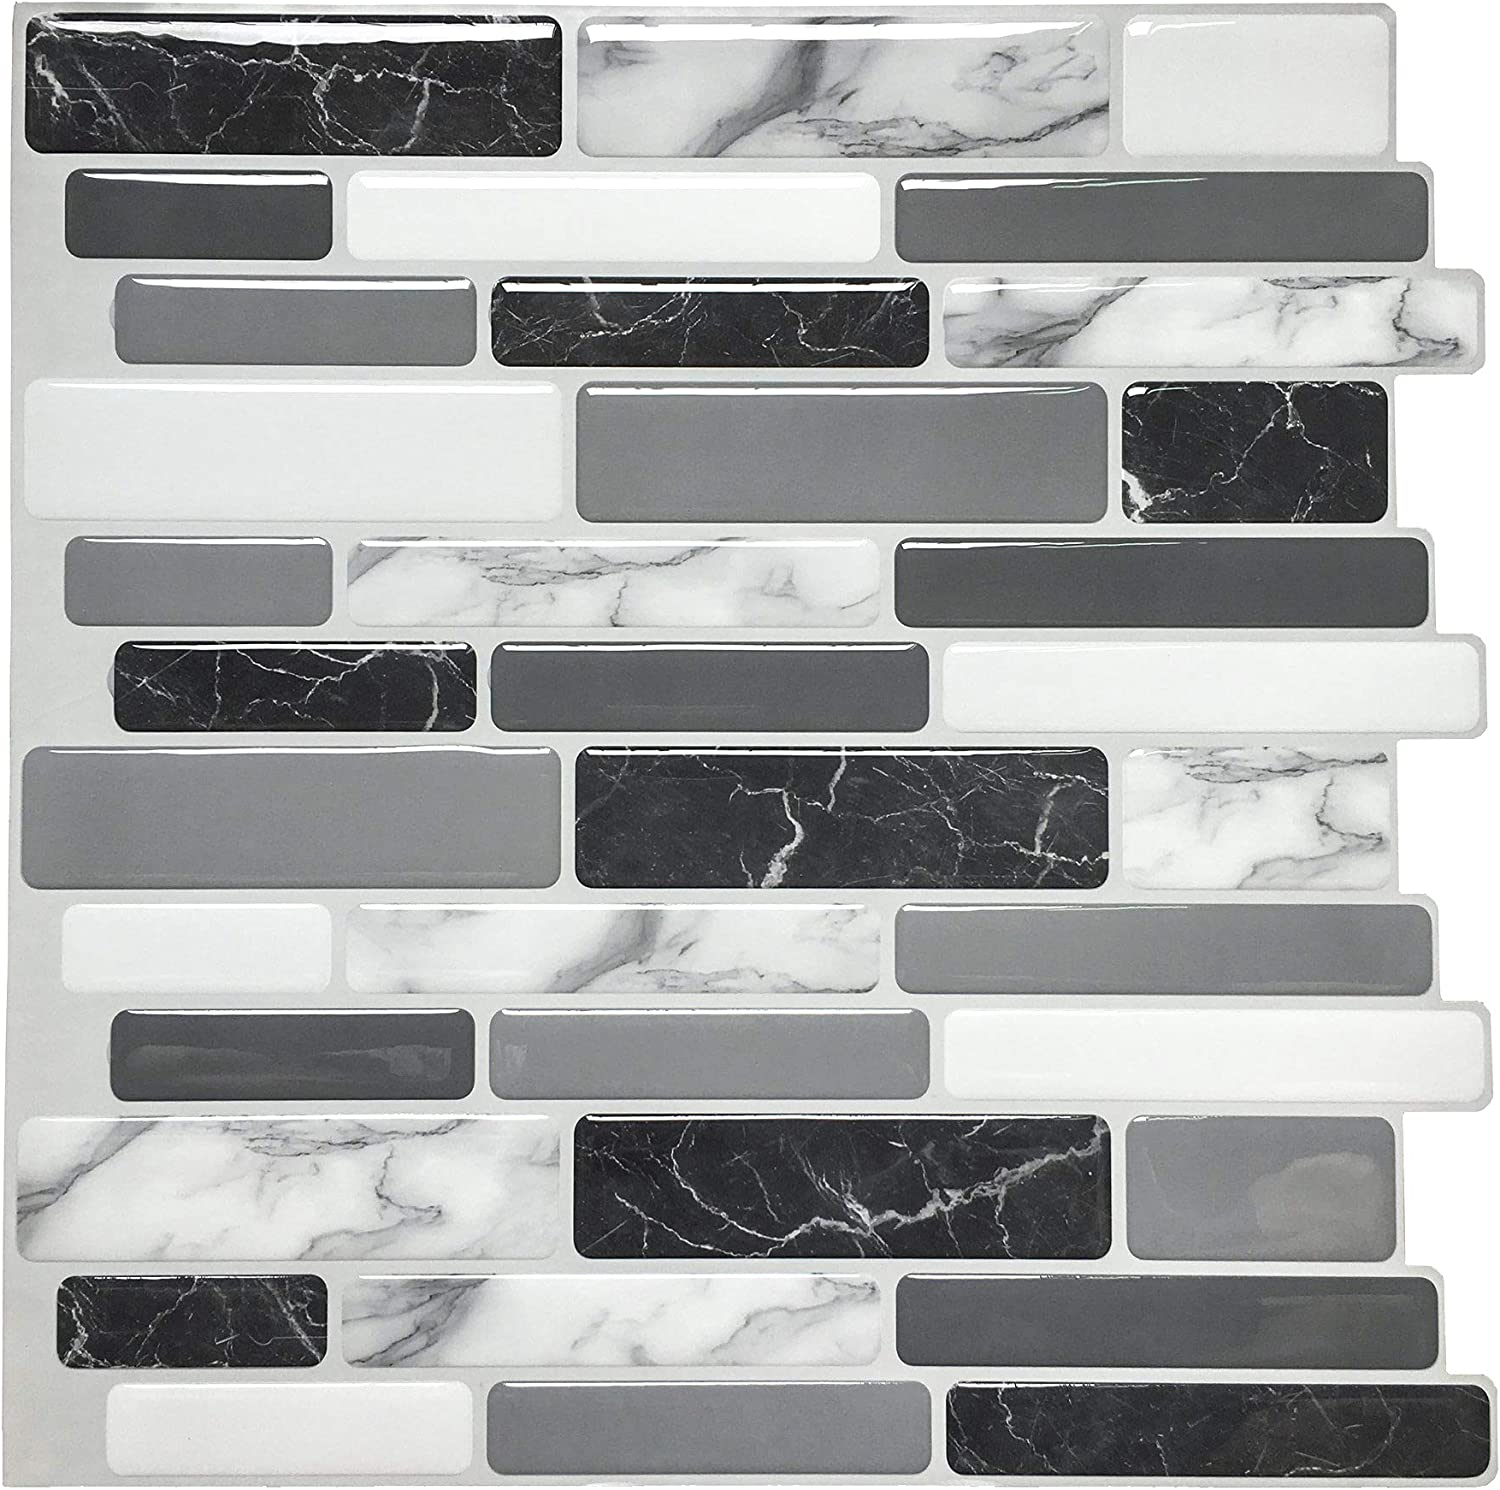 Amazon Com Art3d Peel And Stick Wall Tile For Kitchen Backsplash 12 X12 10 Tiles Home Kitchen